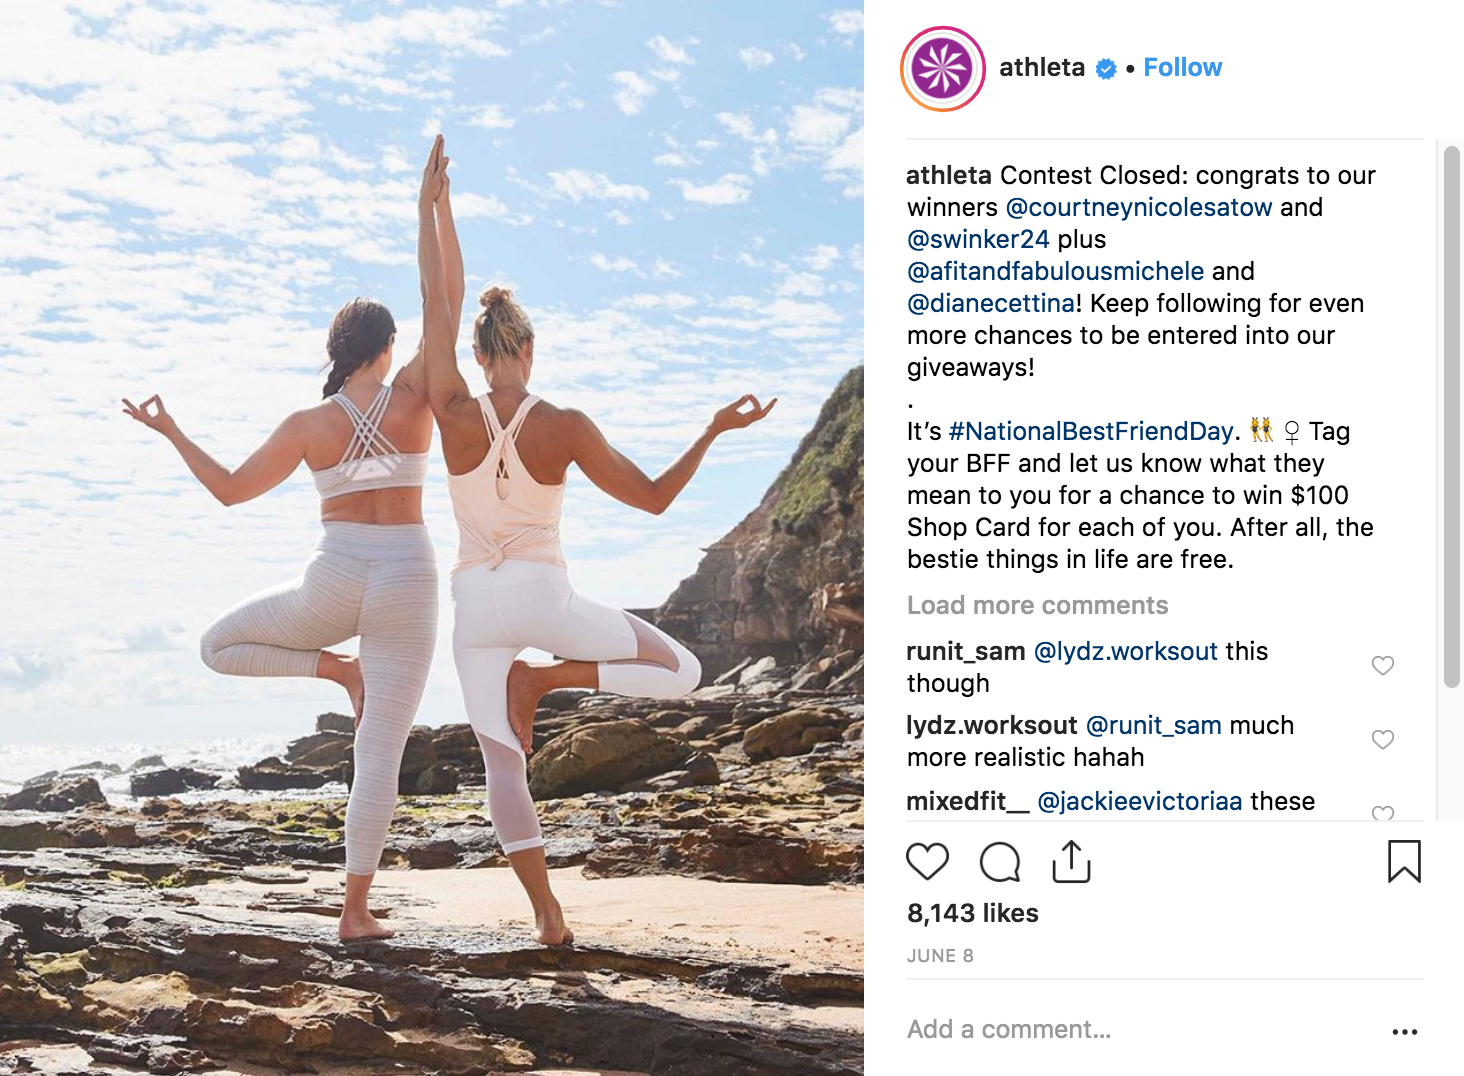 Best Instagram Campaigns 2018 - Athleta - Sked Social